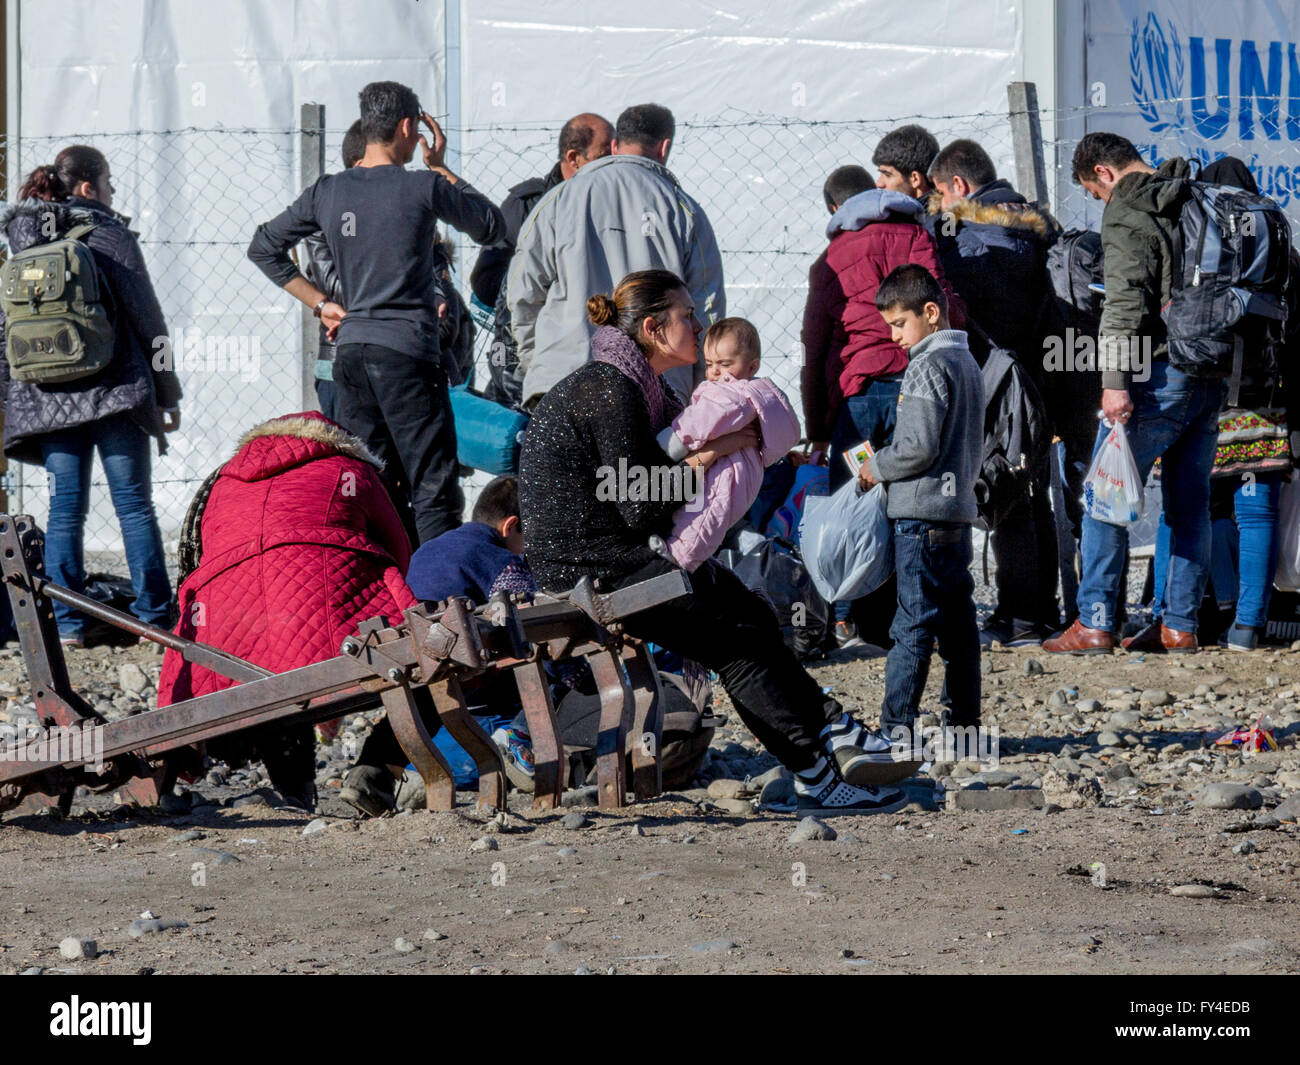 Refugees waiting to register in the refugee camp of Gevgelija after having crossed the border with Greece in Idomeni - Stock Image